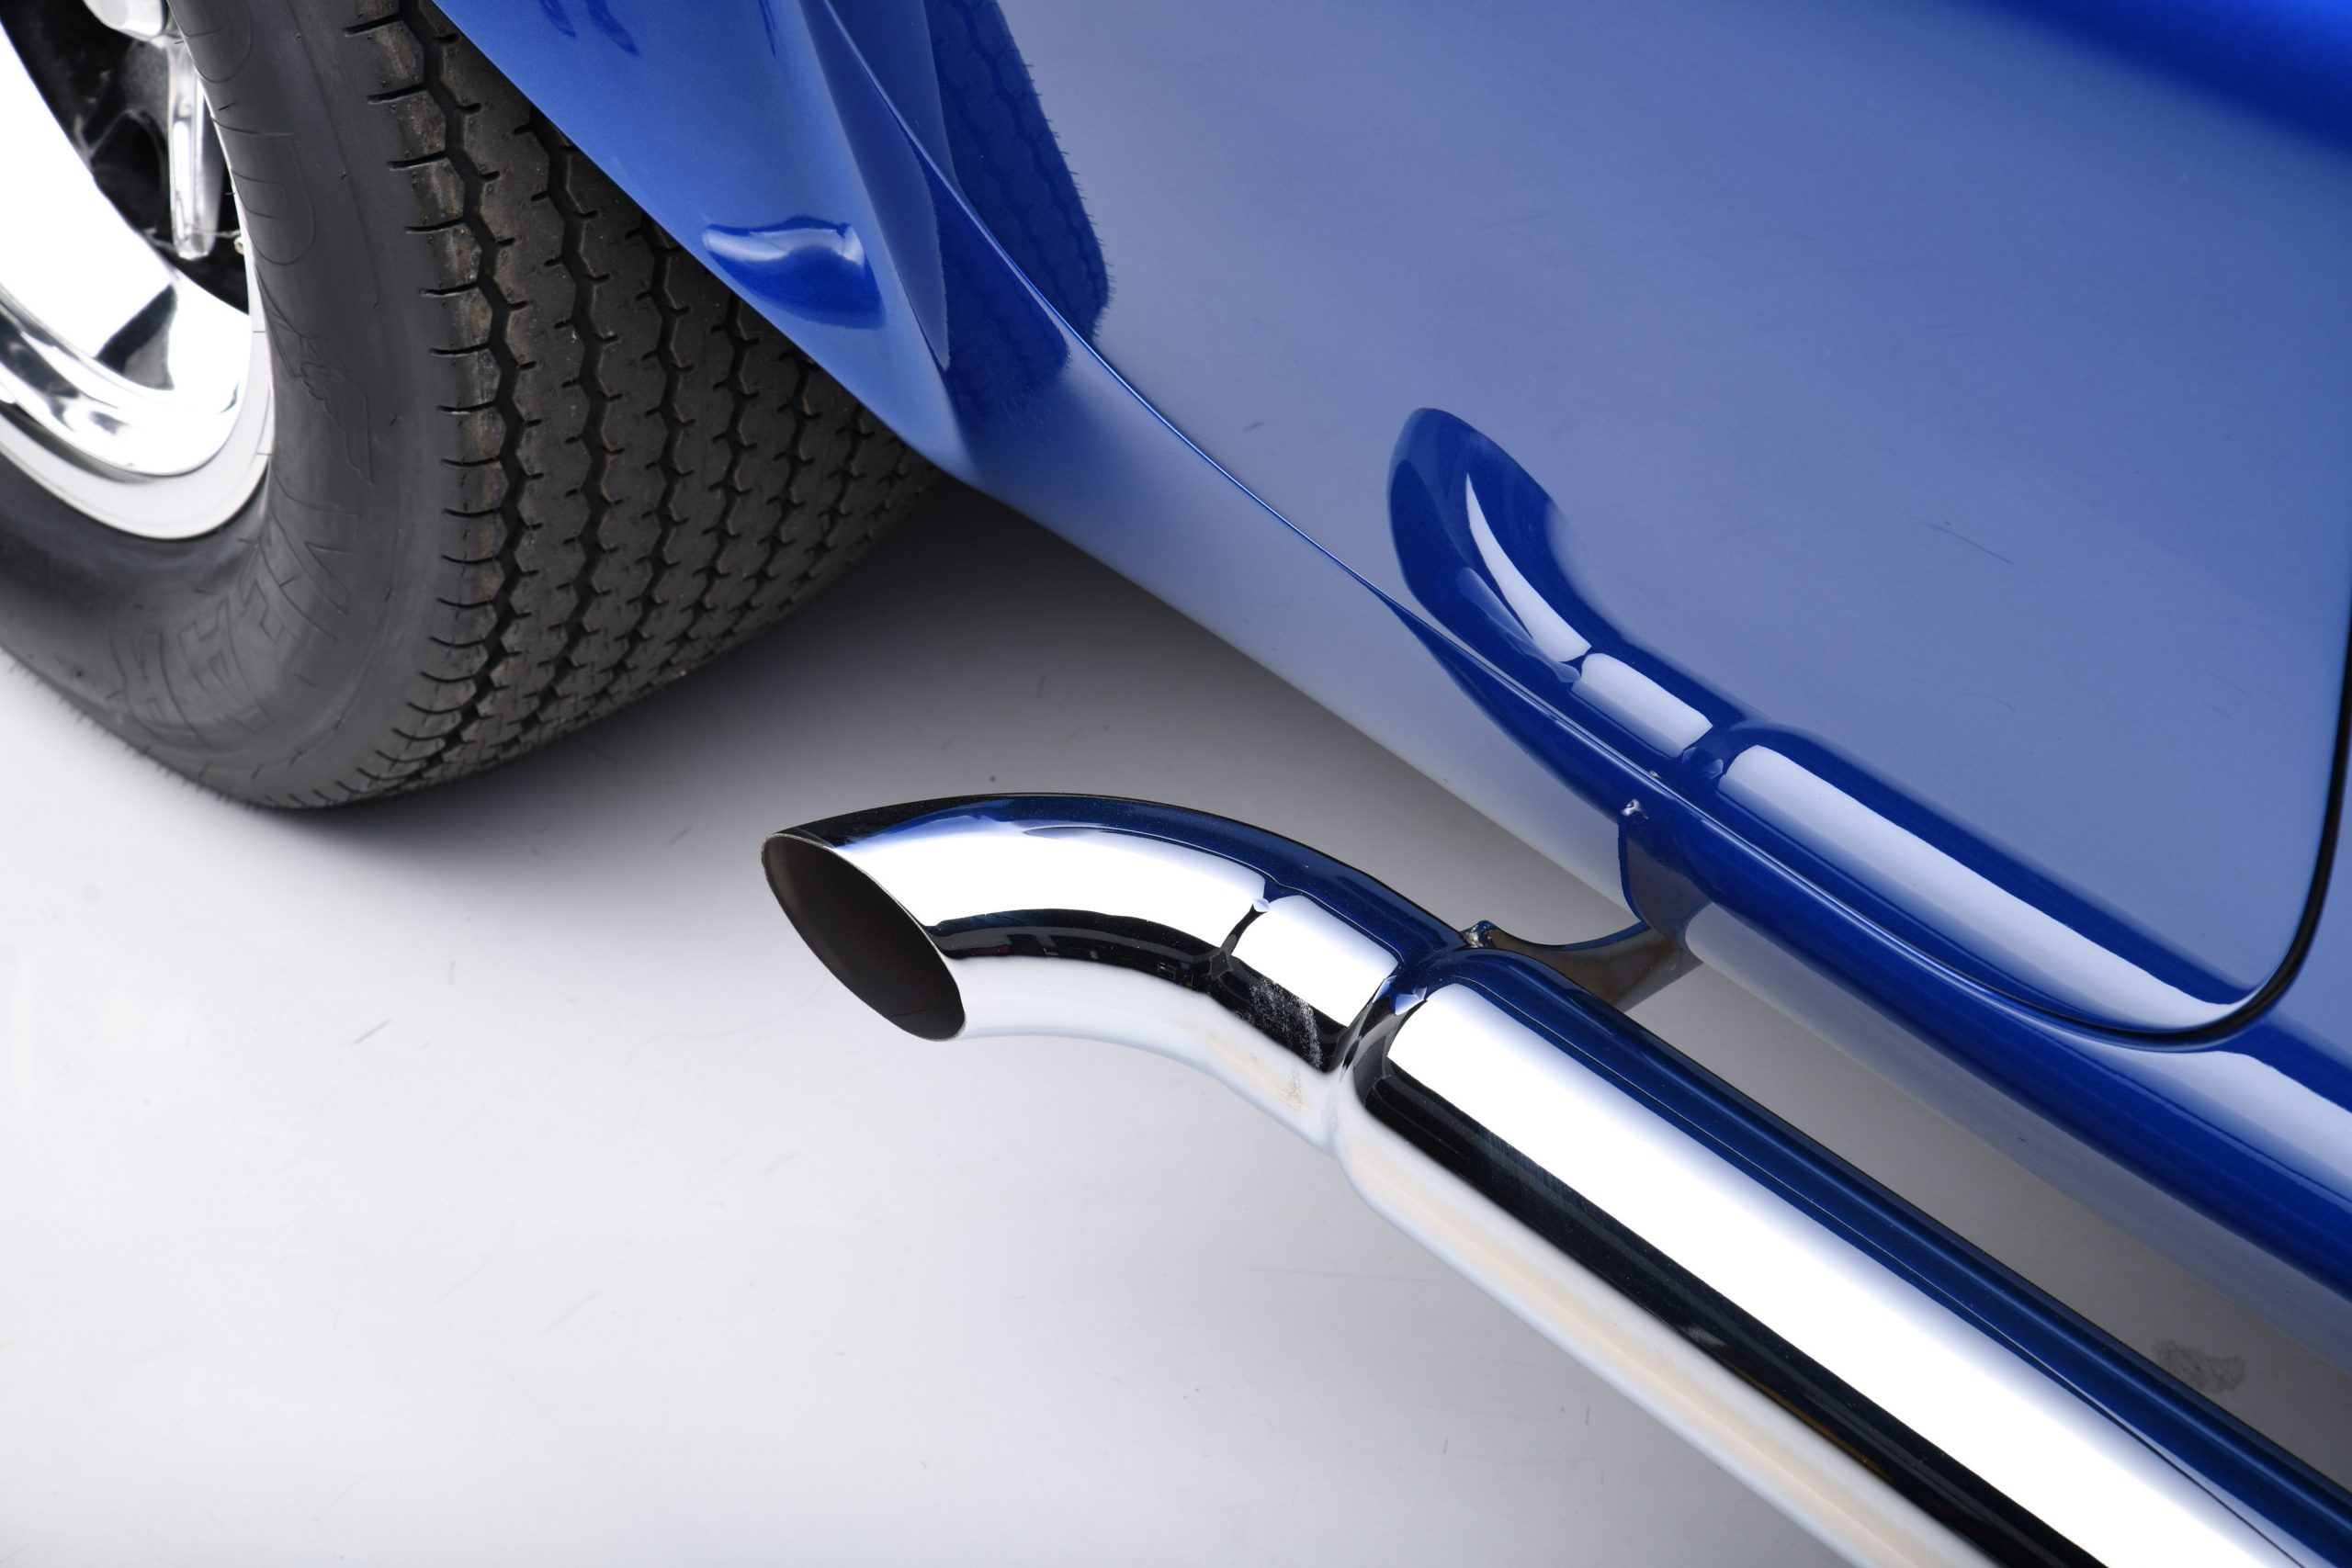 CSX 3015 Shelby Cobra side pipe detail